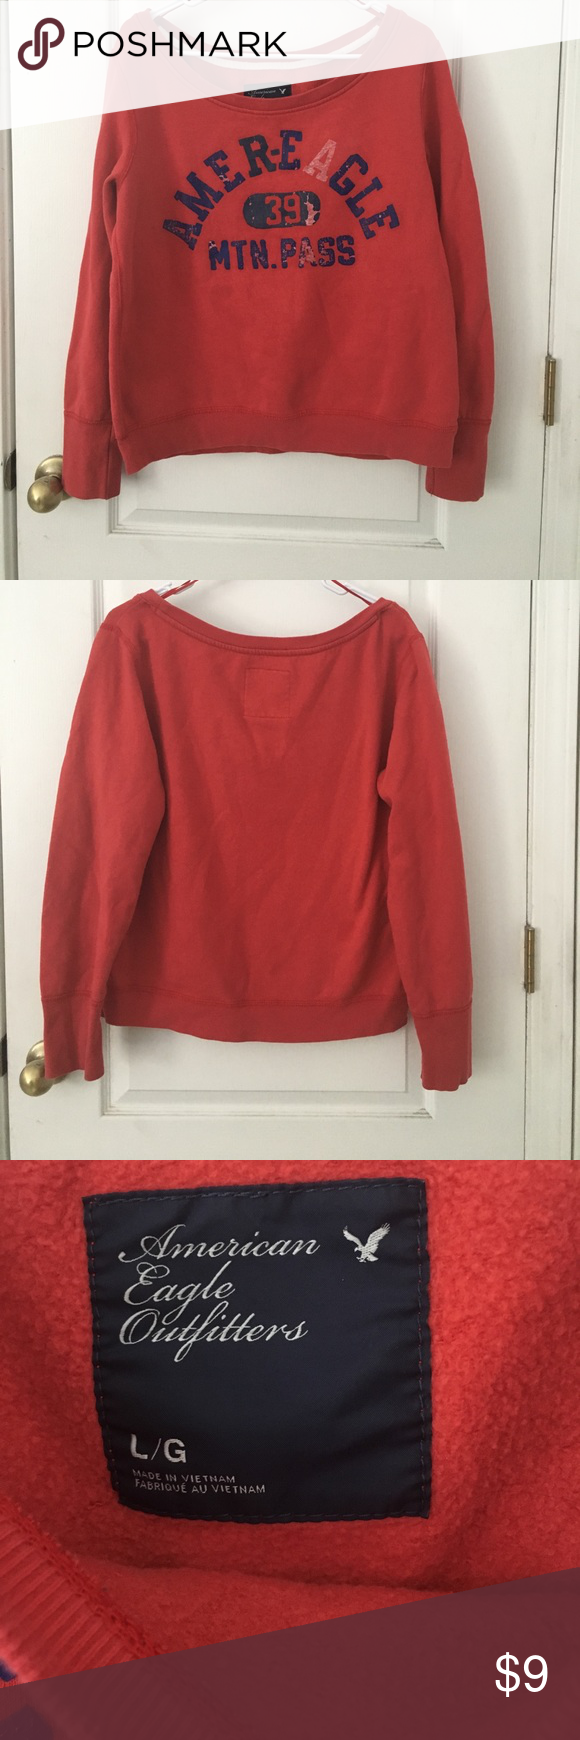 Comfy Cotton Worn Sweatshirt Vintage look and incredibly comfy!! There is slight wear and tear( see last picture) but other than that this is a very durable and amazing piece! American Eagle Outfitters Tops Sweatshirts & Hoodies